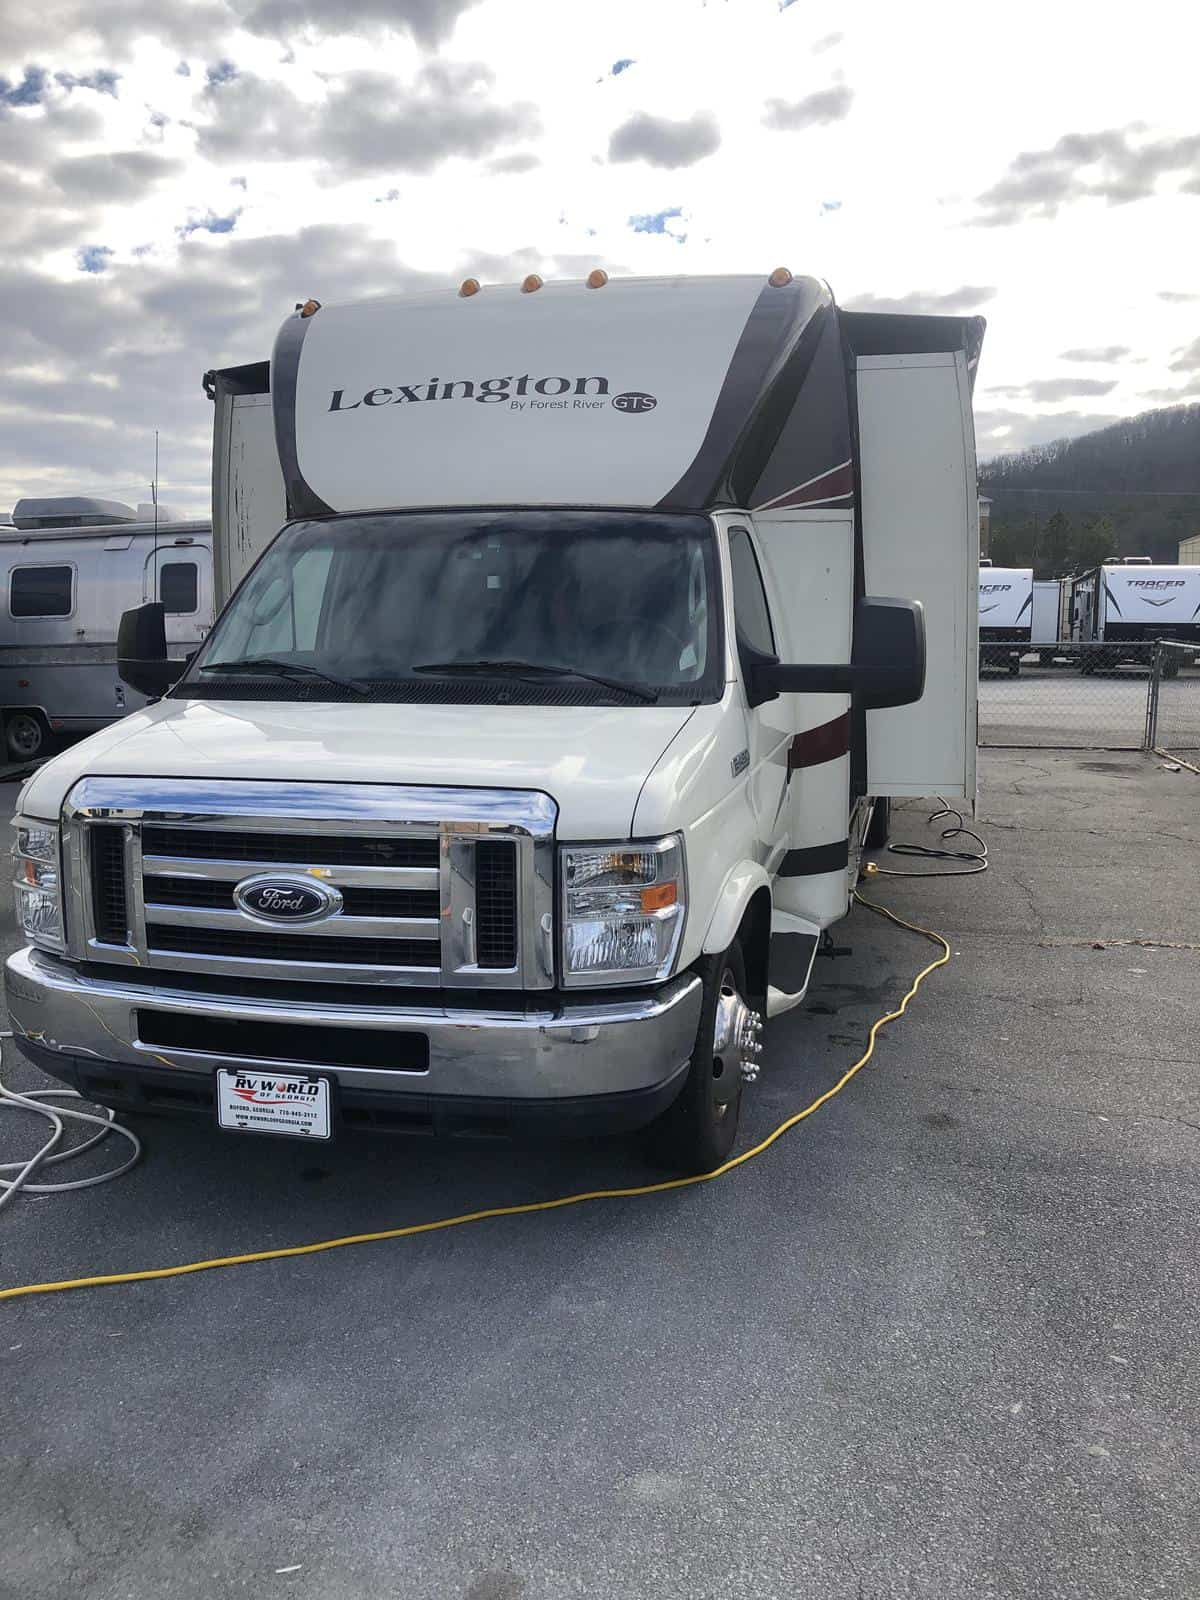 USED 2011 Forest river Lexington 283GTS - Three Way Campers